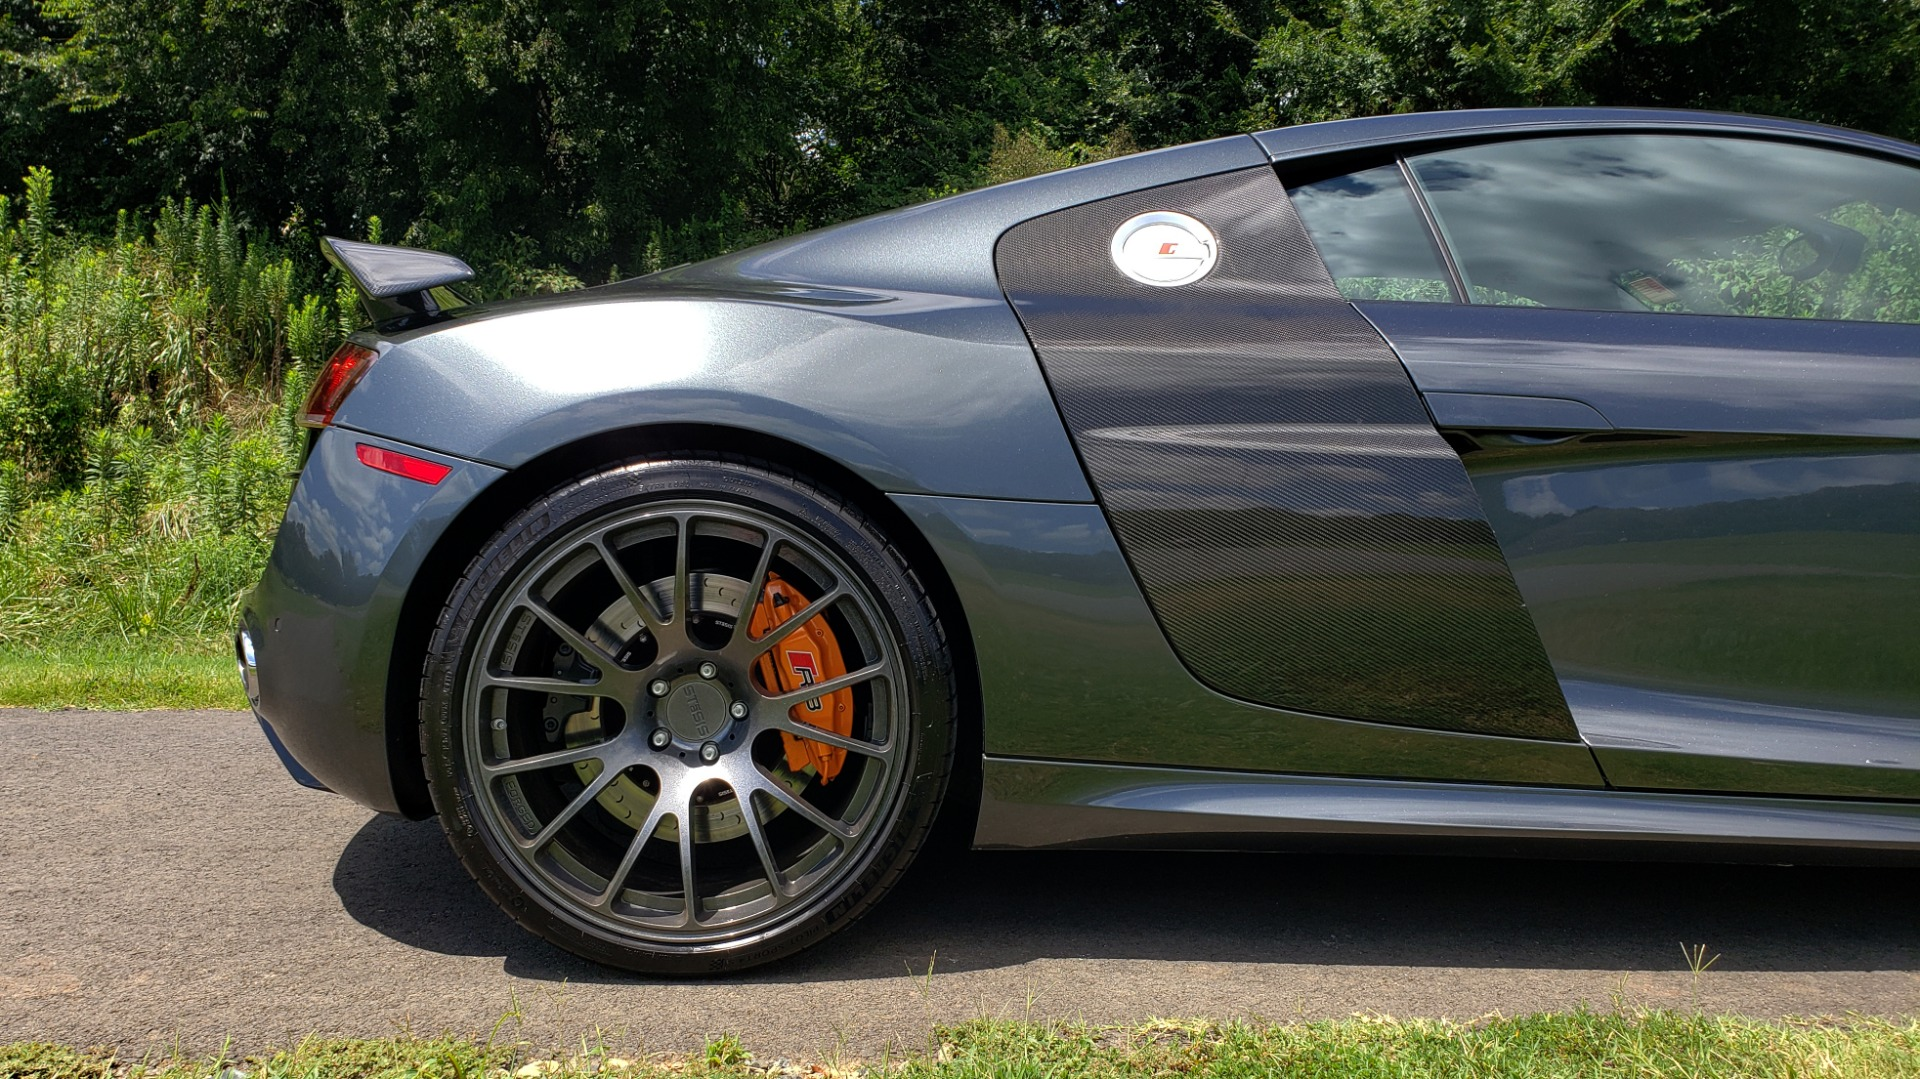 Used 2010 Audi R8 5.2L V10 SUPERCHARGED / AWD / COUPE / CUSTOM TUNED for sale $82,795 at Formula Imports in Charlotte NC 28227 79